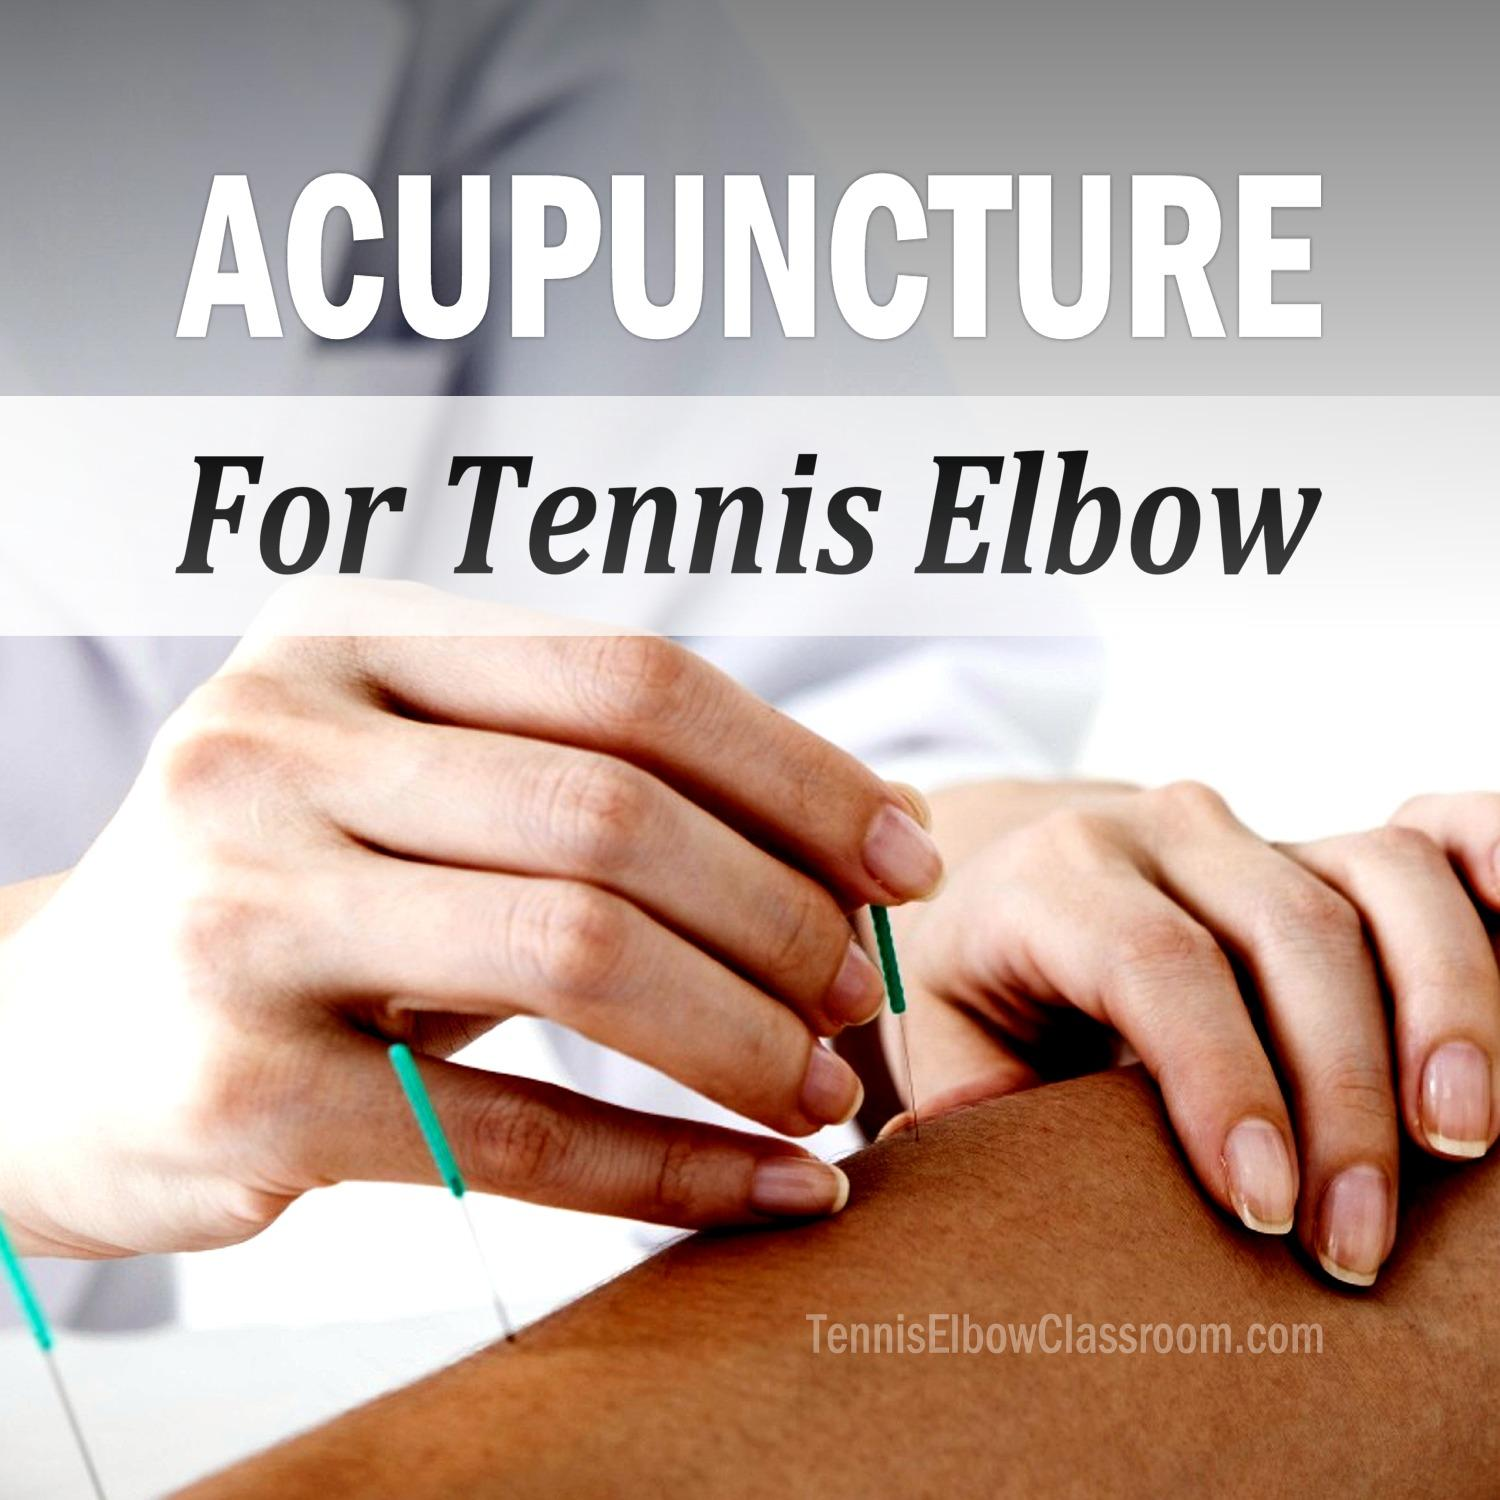 Acupuncture For Tennis Elbow Podcast Cover